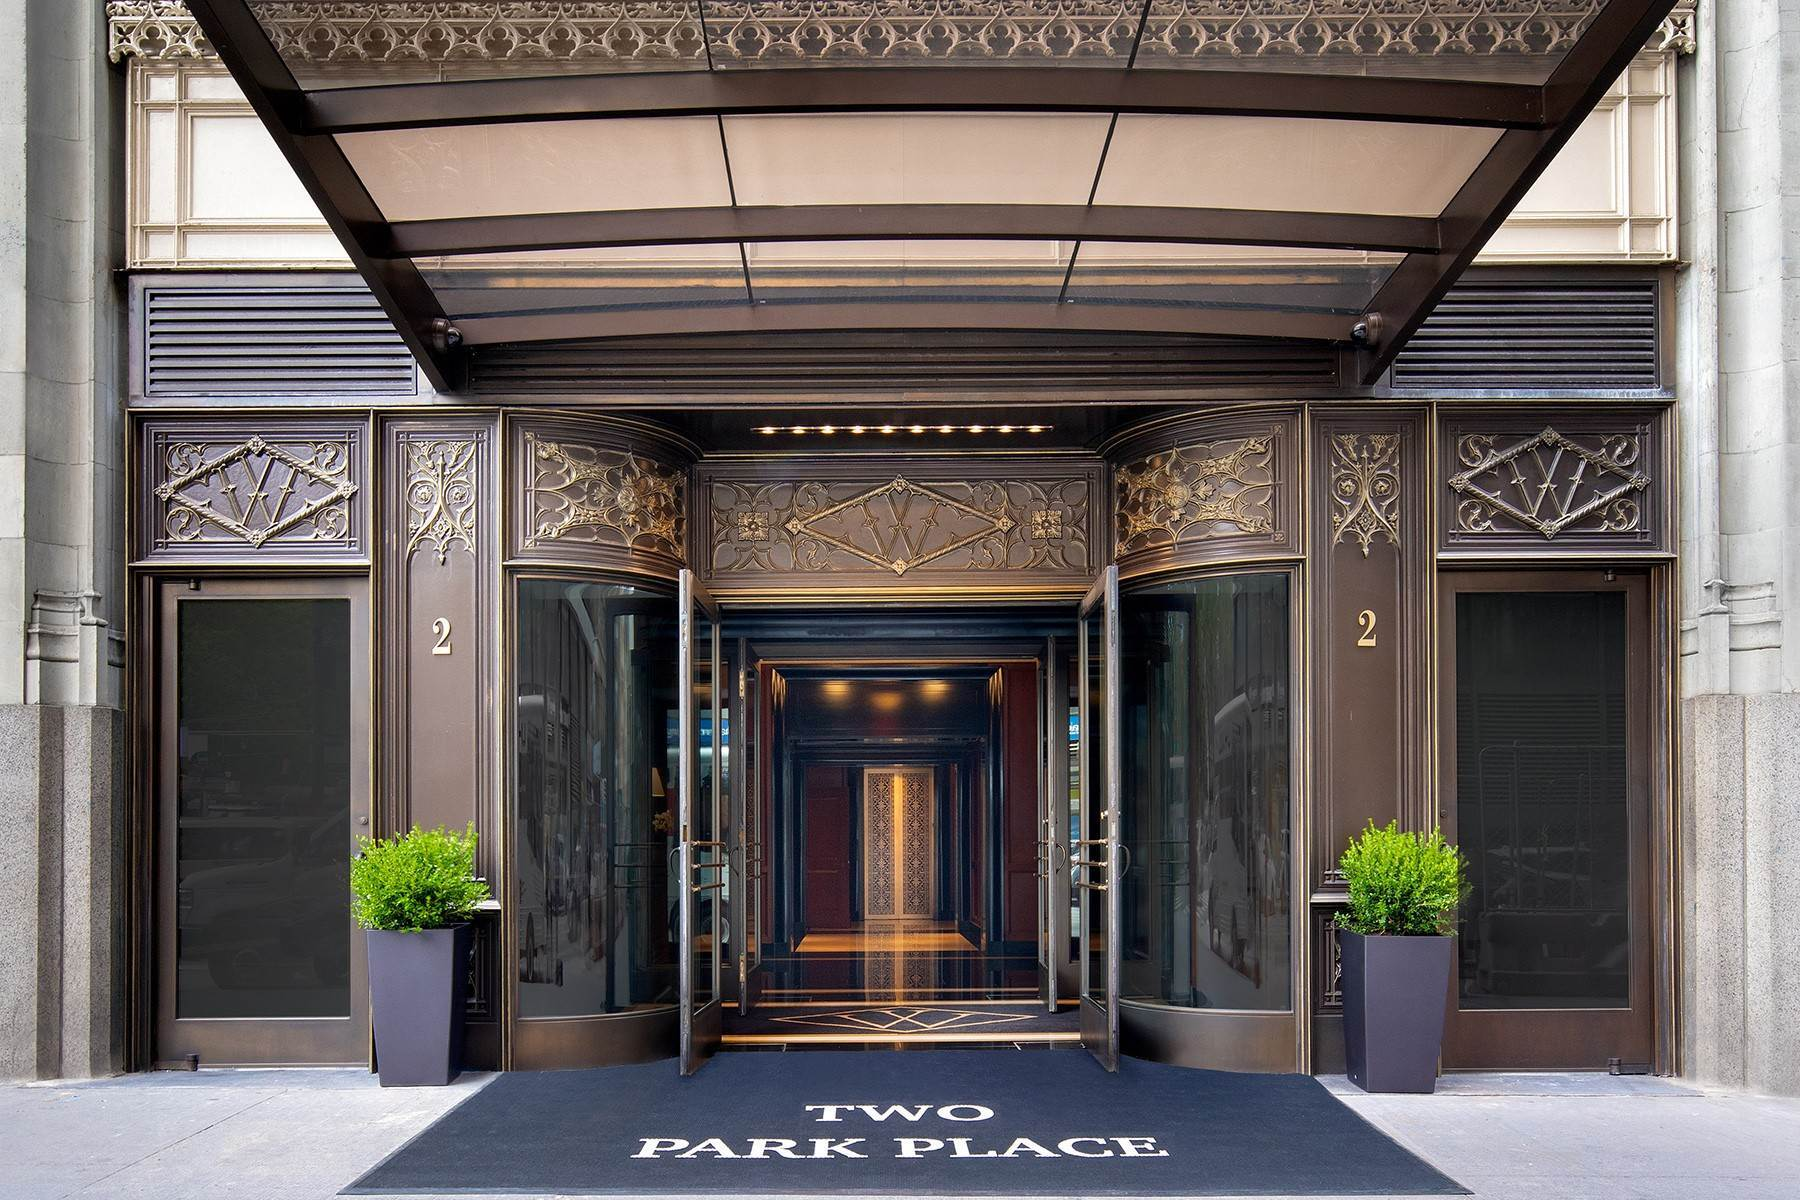 7. Condominiums for Sale at The Pinnacle Penthouse 2 Park Place, Pinnacle Penthouse, New York, New York 10007 United States